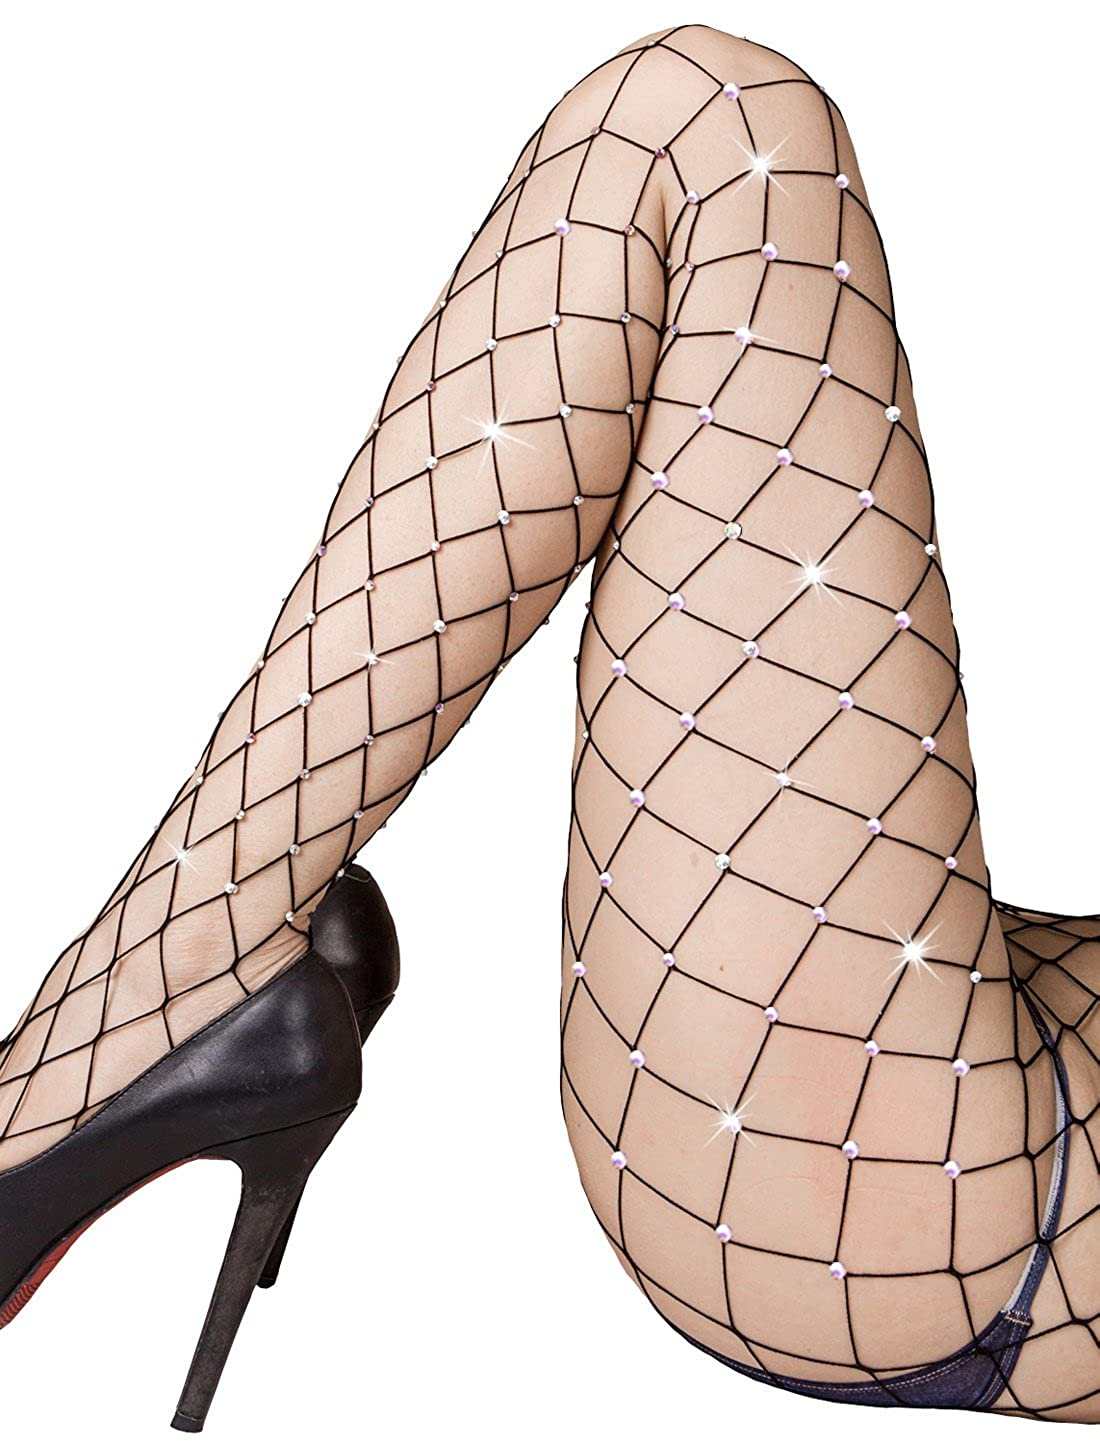 c8266c35f0d47f Sexy fishnet tights for women and ladies. Rhinestone fishnet stockings for  party and club. Soft shinning net pantyhose for daily life and raves